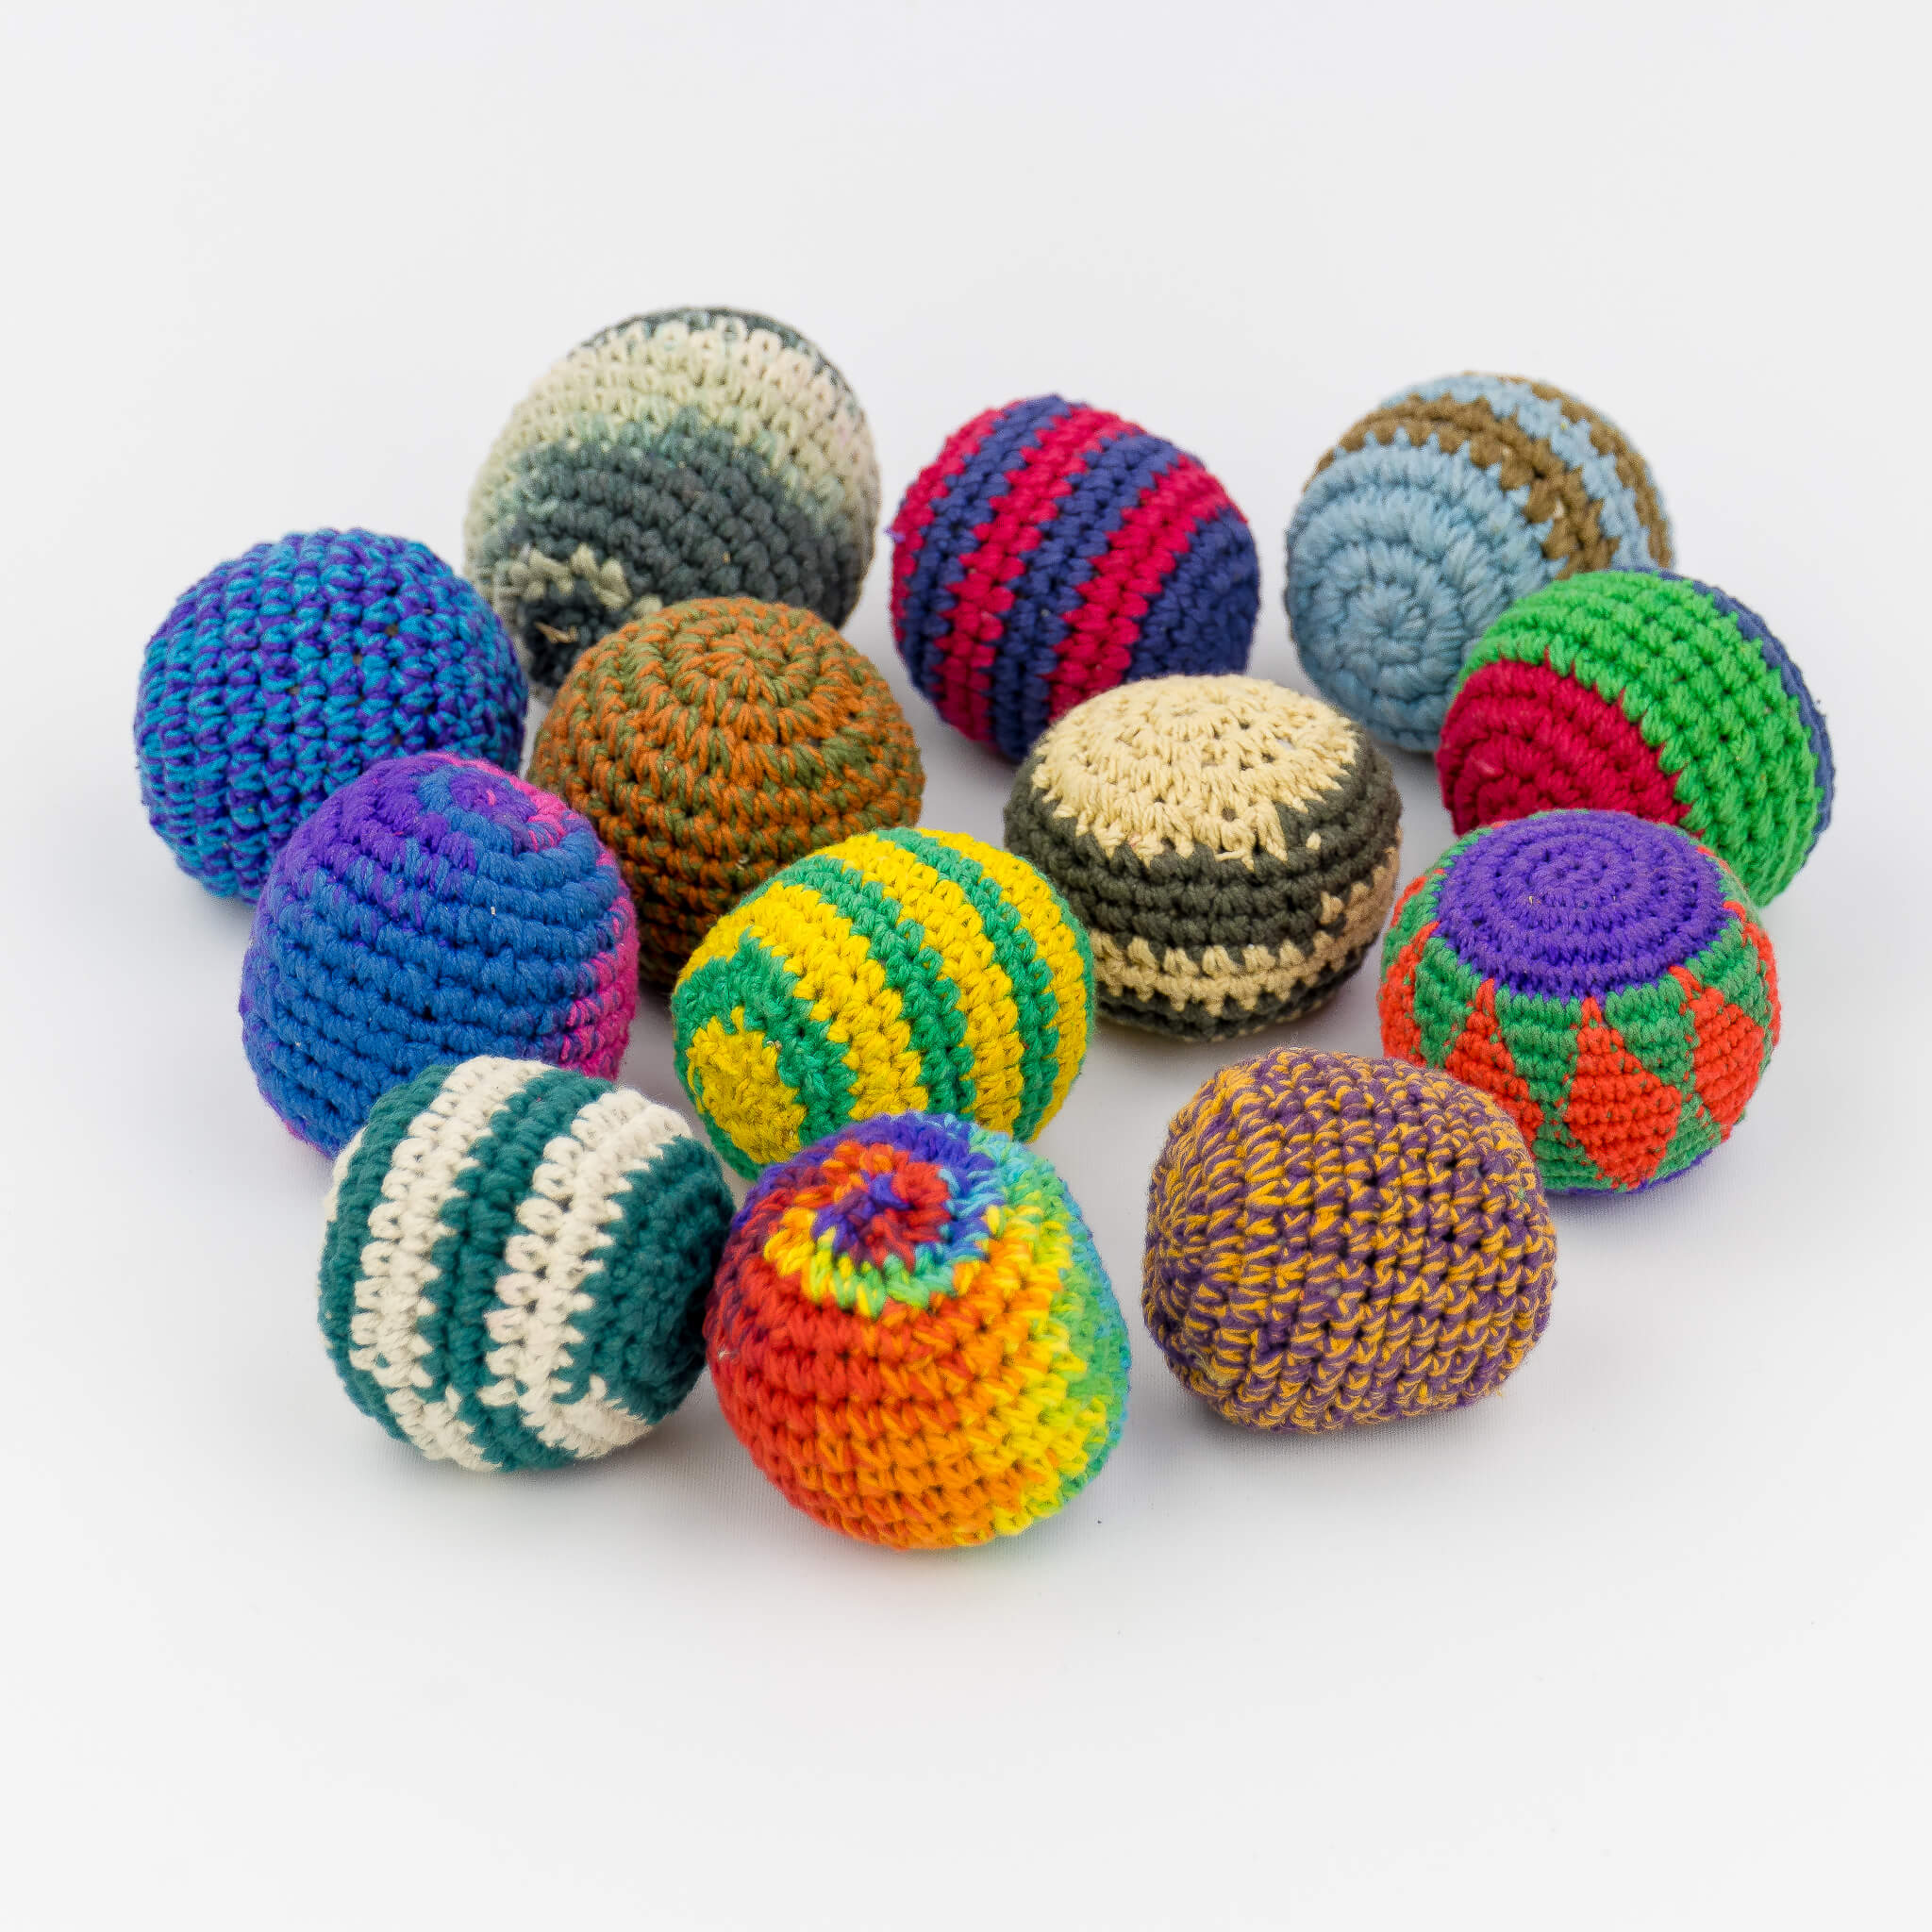 thamel-shop-hacky-sack-balls-best-hippie-clothing-nepal-australia